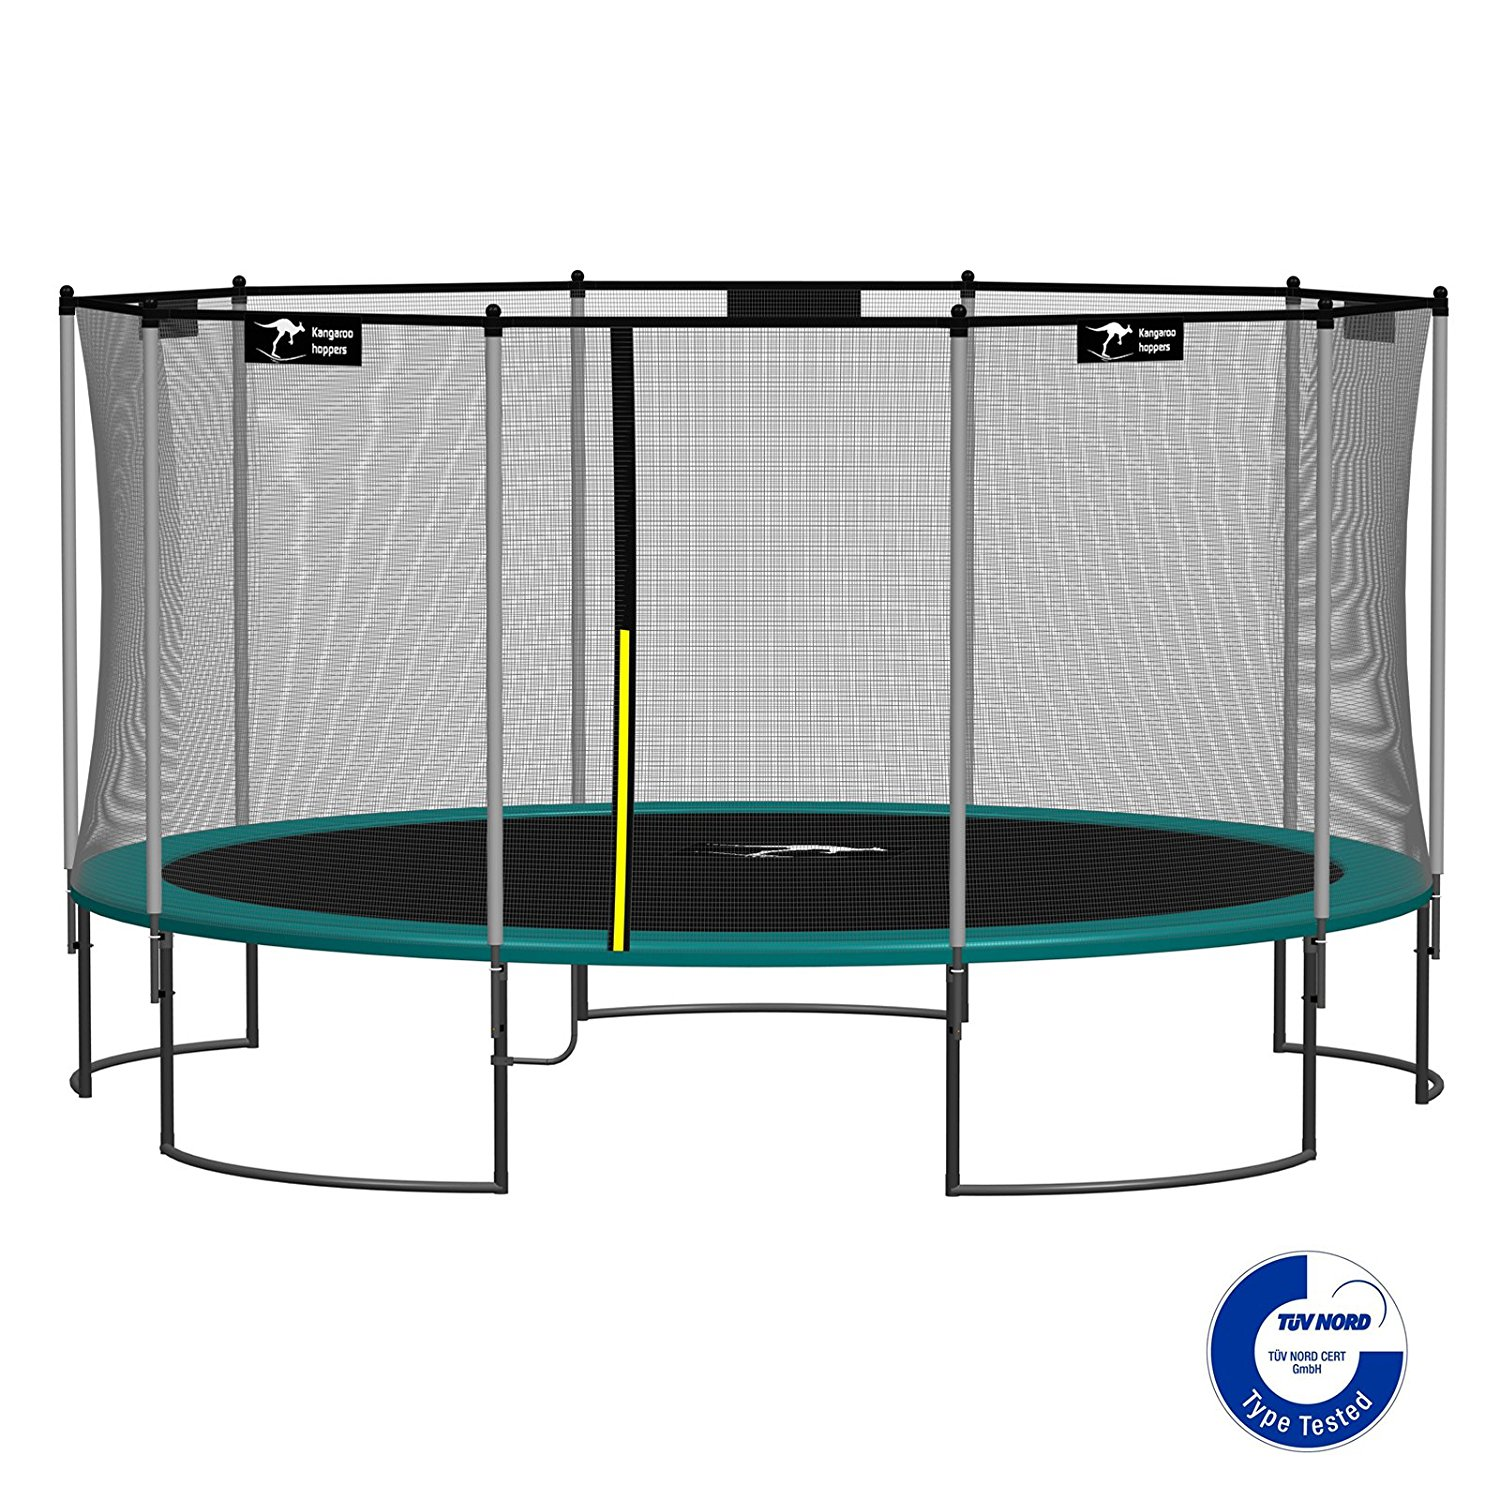 Best Trampoline 2017 The Top 10 Trampolines We Could Find